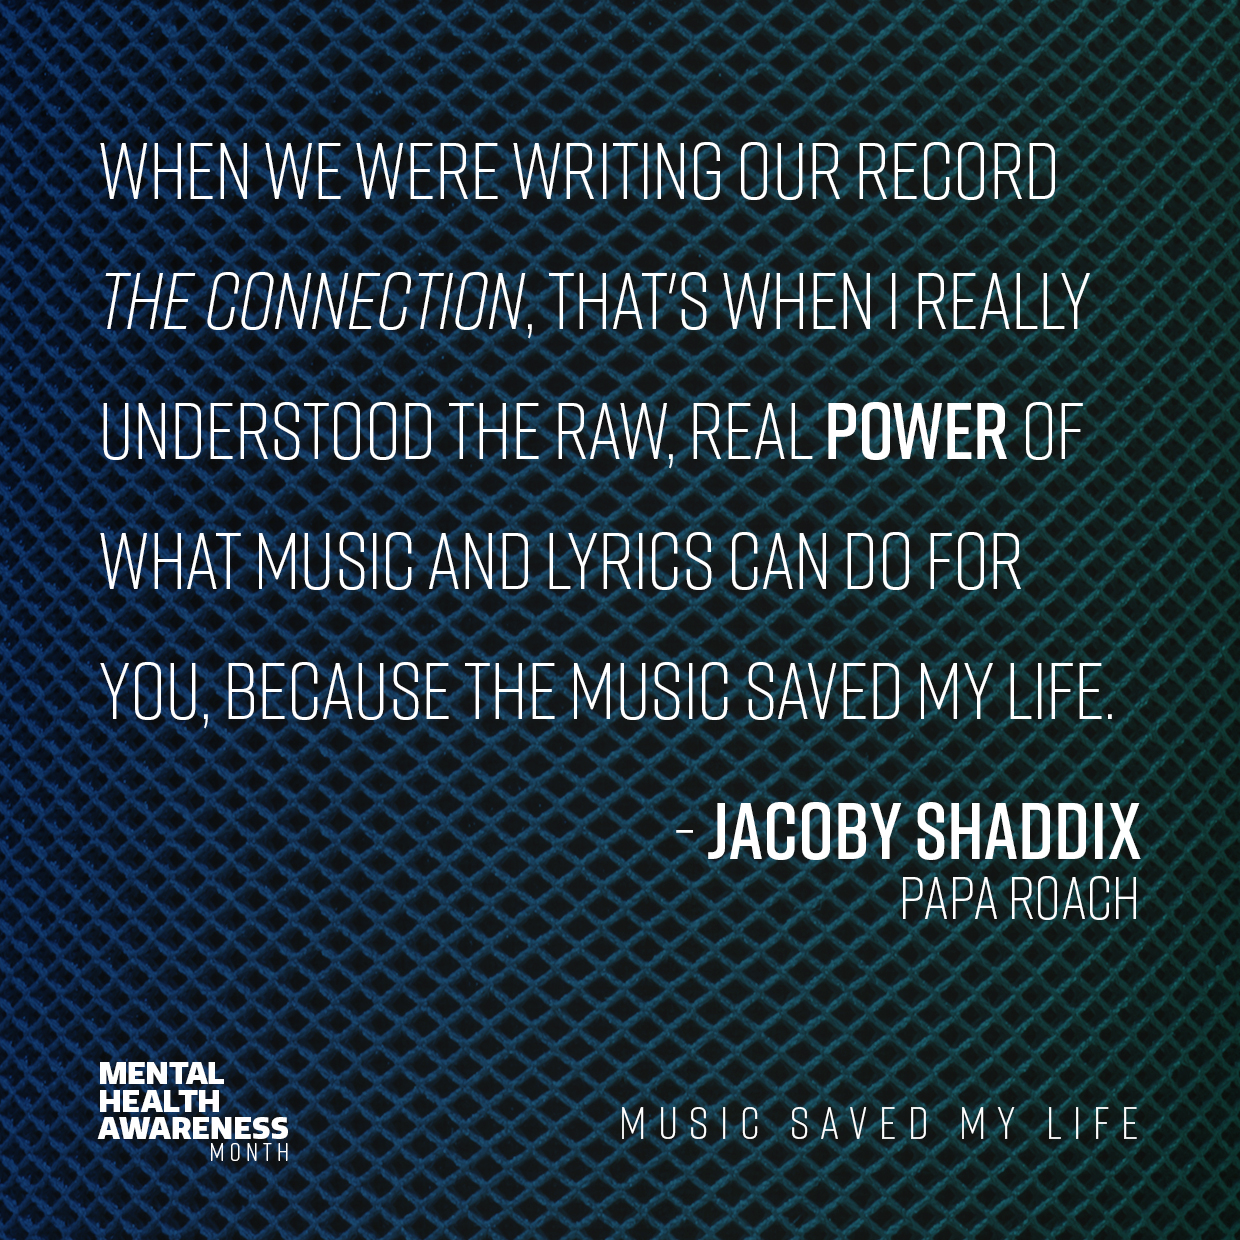 Jacoby Shaddix quote for Mental Health Awareness Month 2018